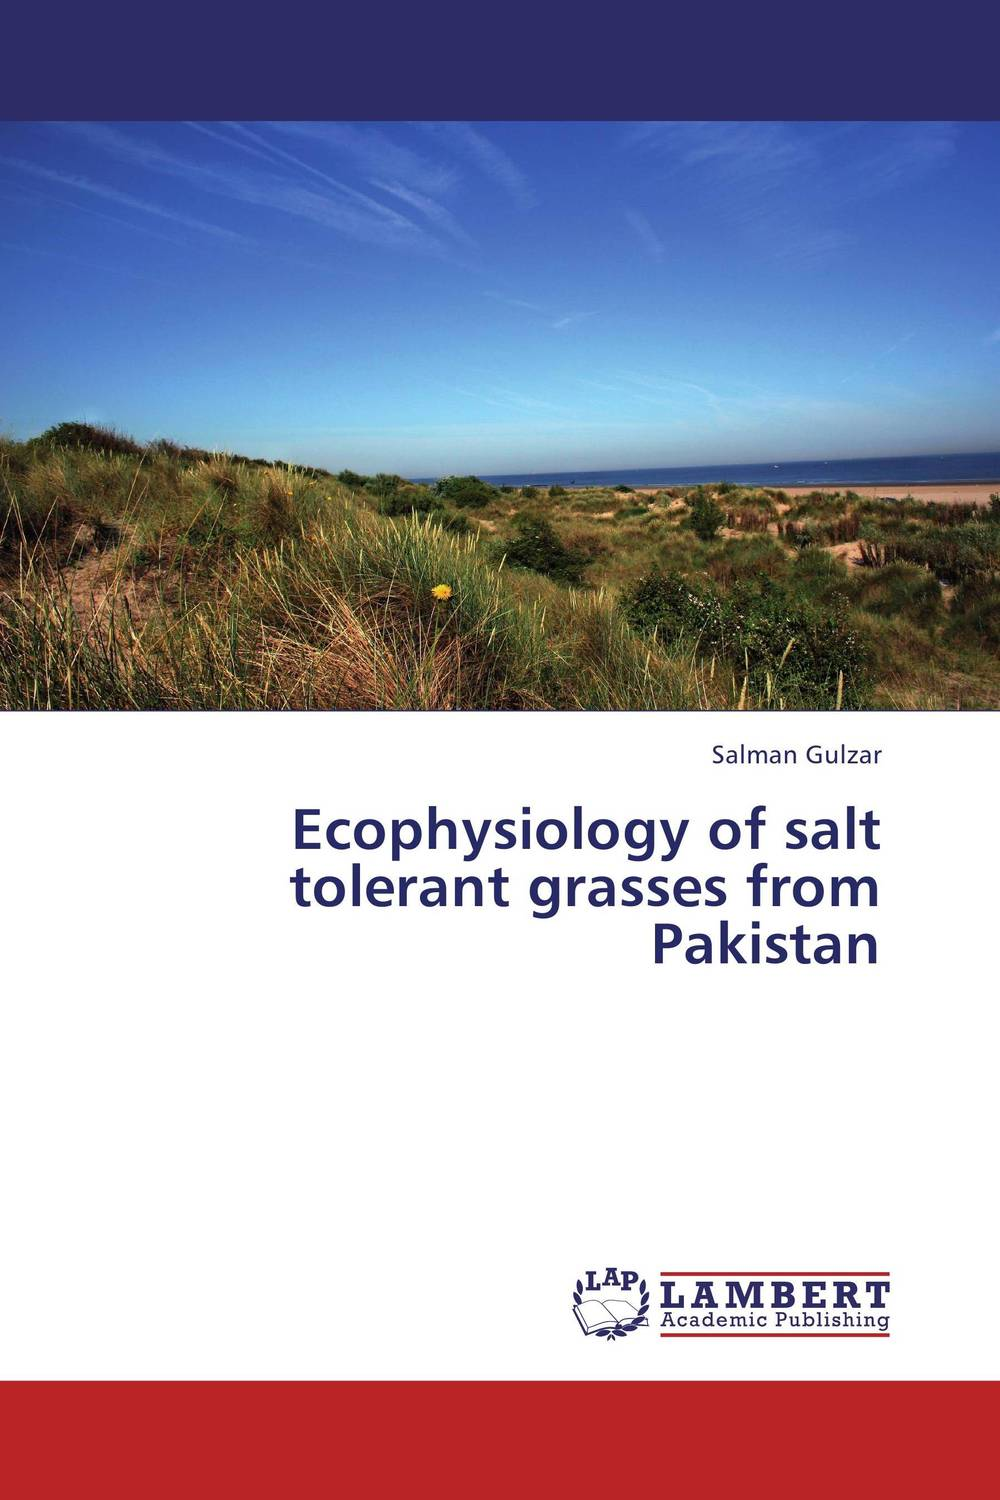 Ecophysiology of salt tolerant grasses from Pakistan seed dormancy and germination